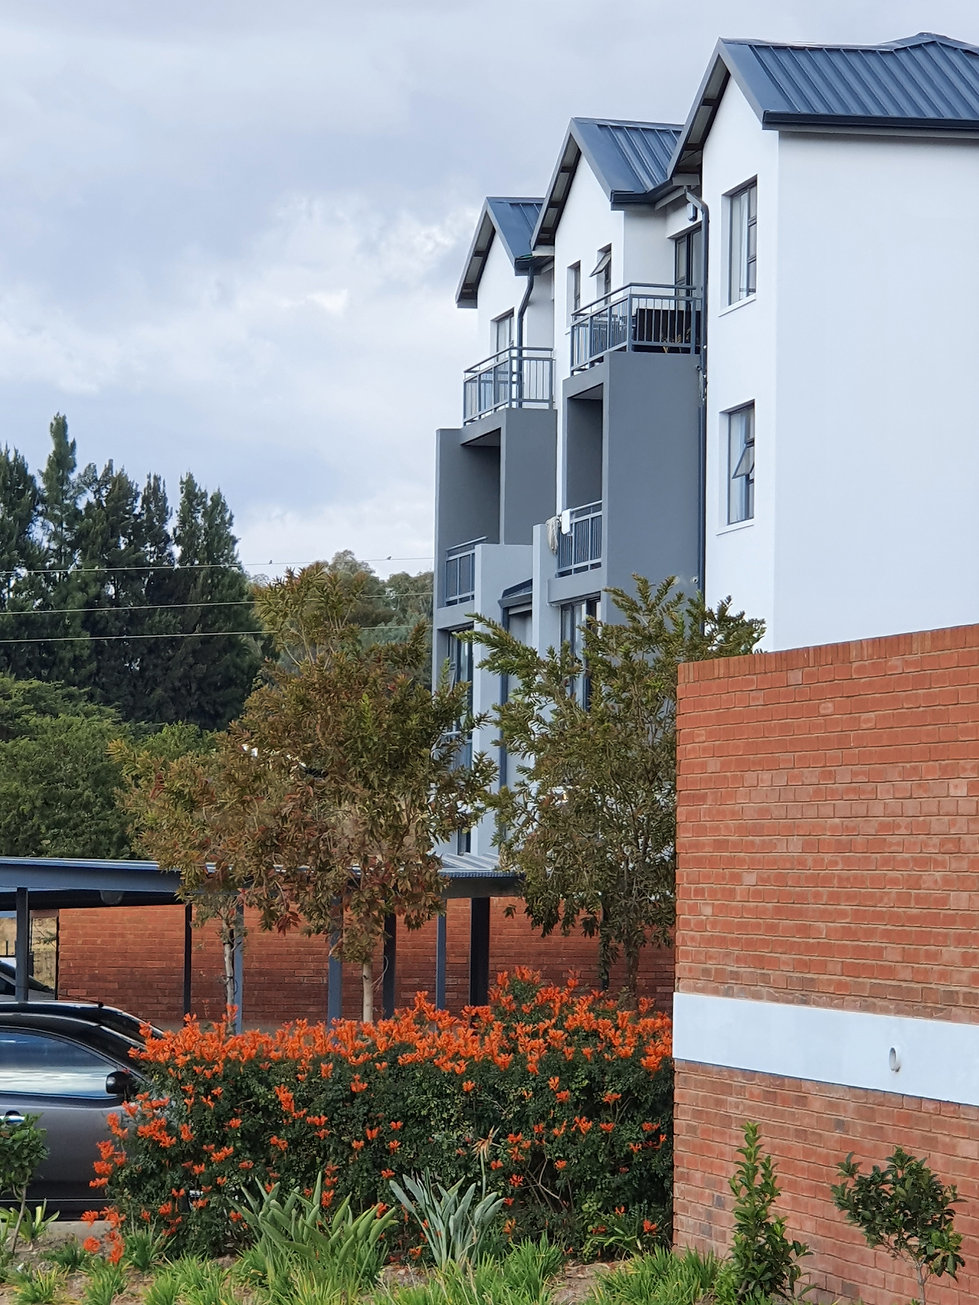 Housing Estate project by architect: Hub Architects and is located in Pretoria.